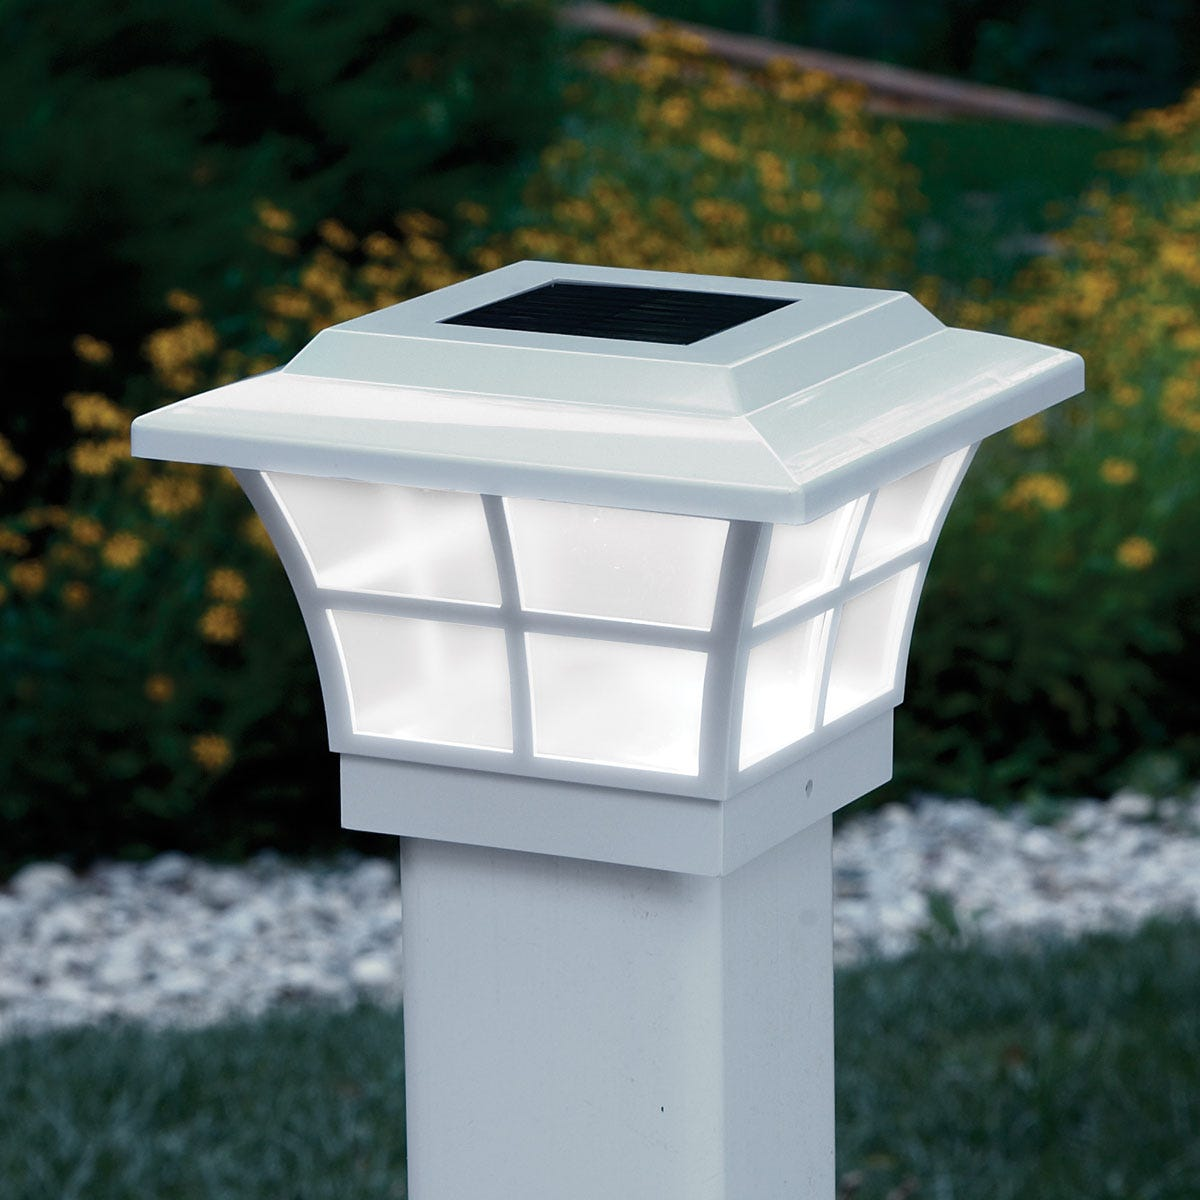 Prestige Solar Lighted Post Caps White From Sporty S